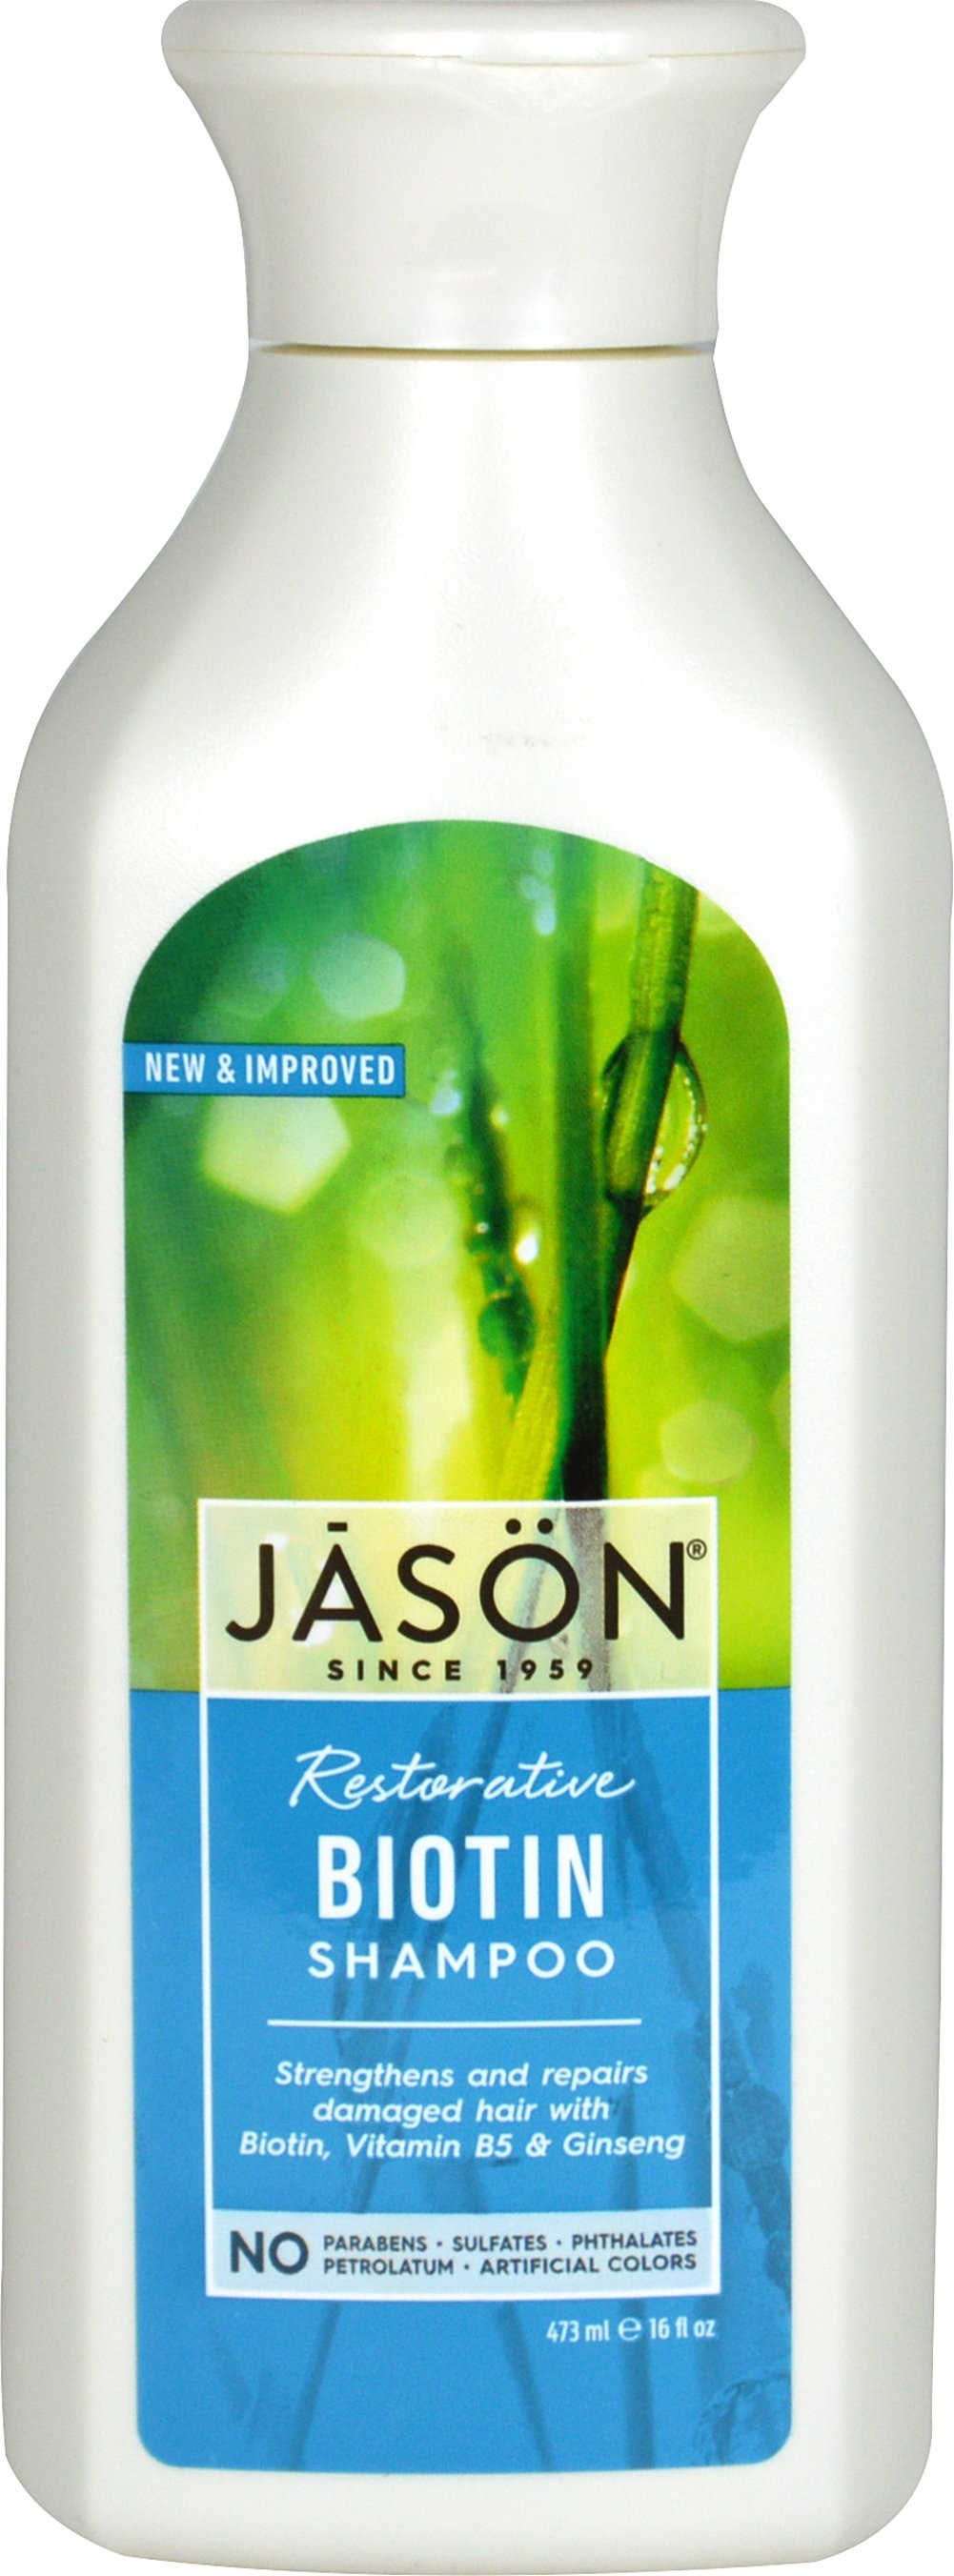 "Jason® Natural Biotin Hair Fortifying Shampoo <p><strong>From the Manufacturer's Label: </strong></p><p>Enriched with Plant Proteins, Ginseng and Chamomile</p><p>Helps Promote Healthier Hair</p><p>Jason Natural Biotin Shampoo is formulated to gently cleanse hair and scalp and help alleviate dry, itchy scalp, repair damaged hair and split ends with ""bio-active"" natural Biotin, Vitamin B5, Certified Organic Extracts of Marigo"